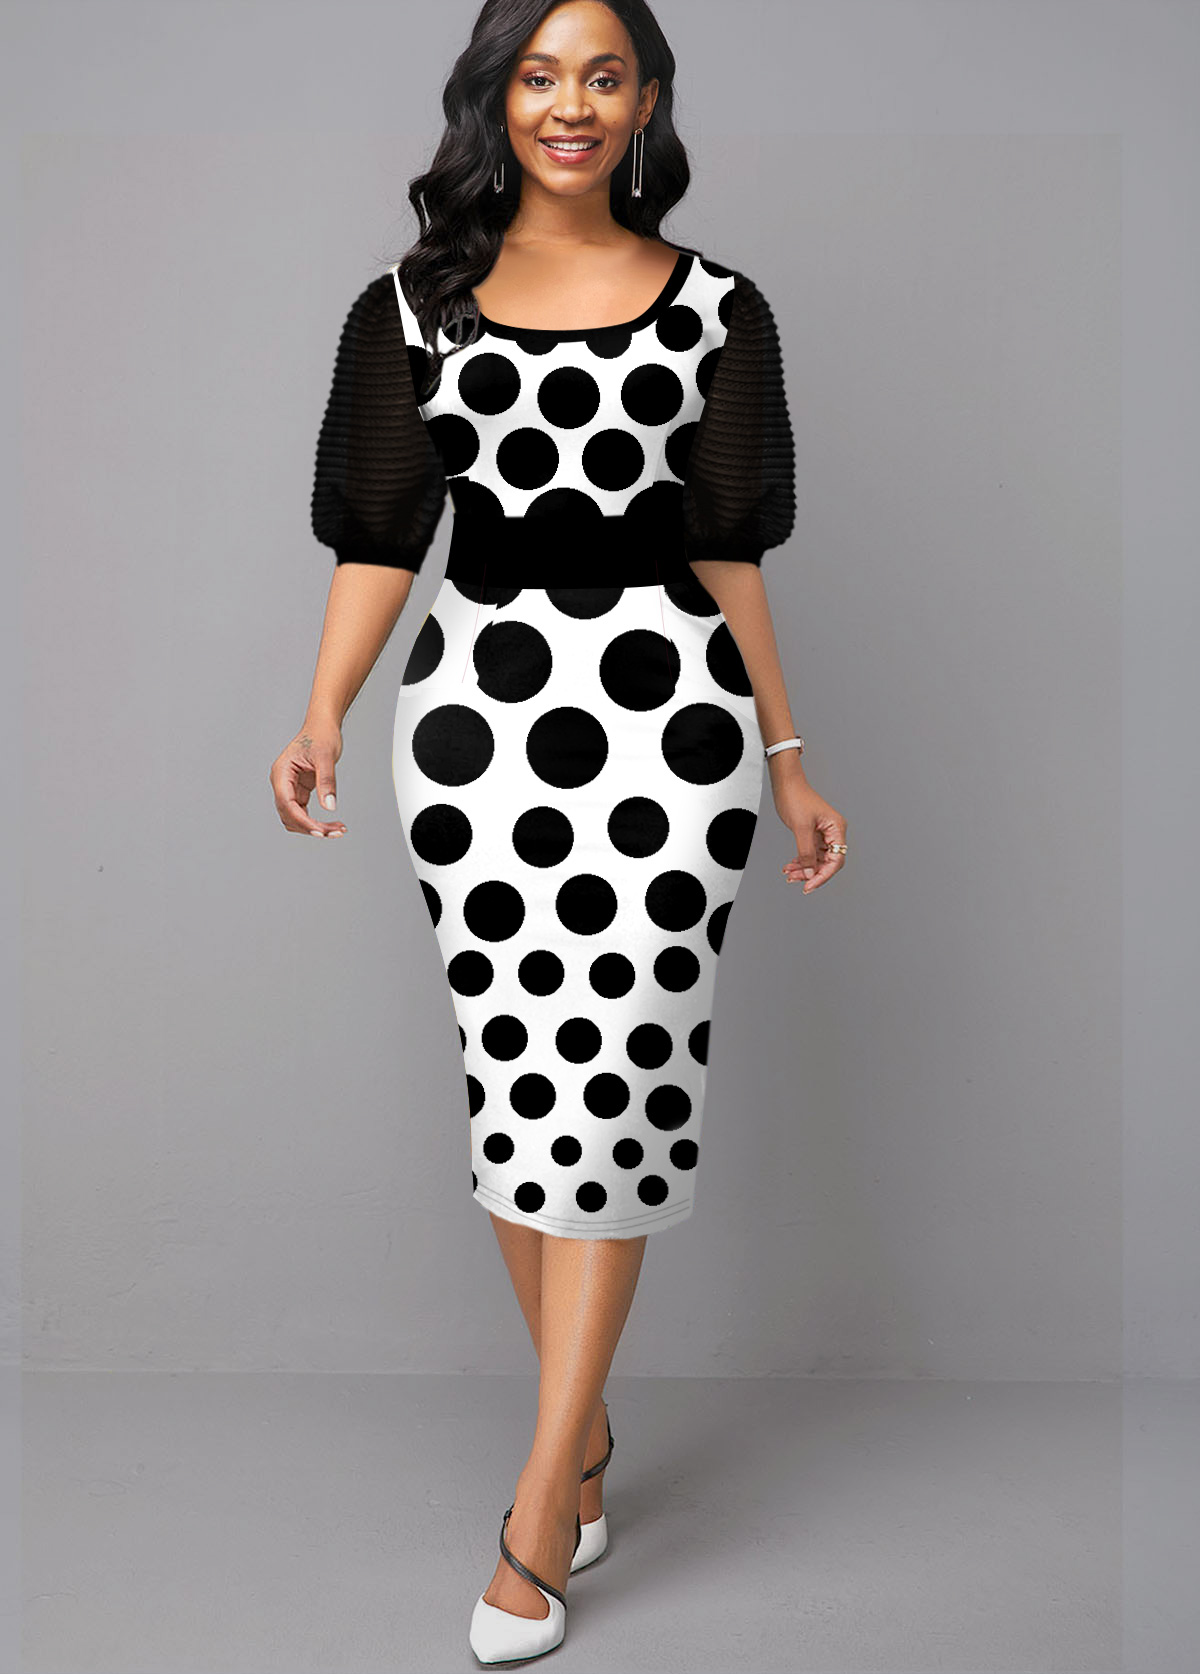 Polka Dot Print Half Sleeve Black Dress